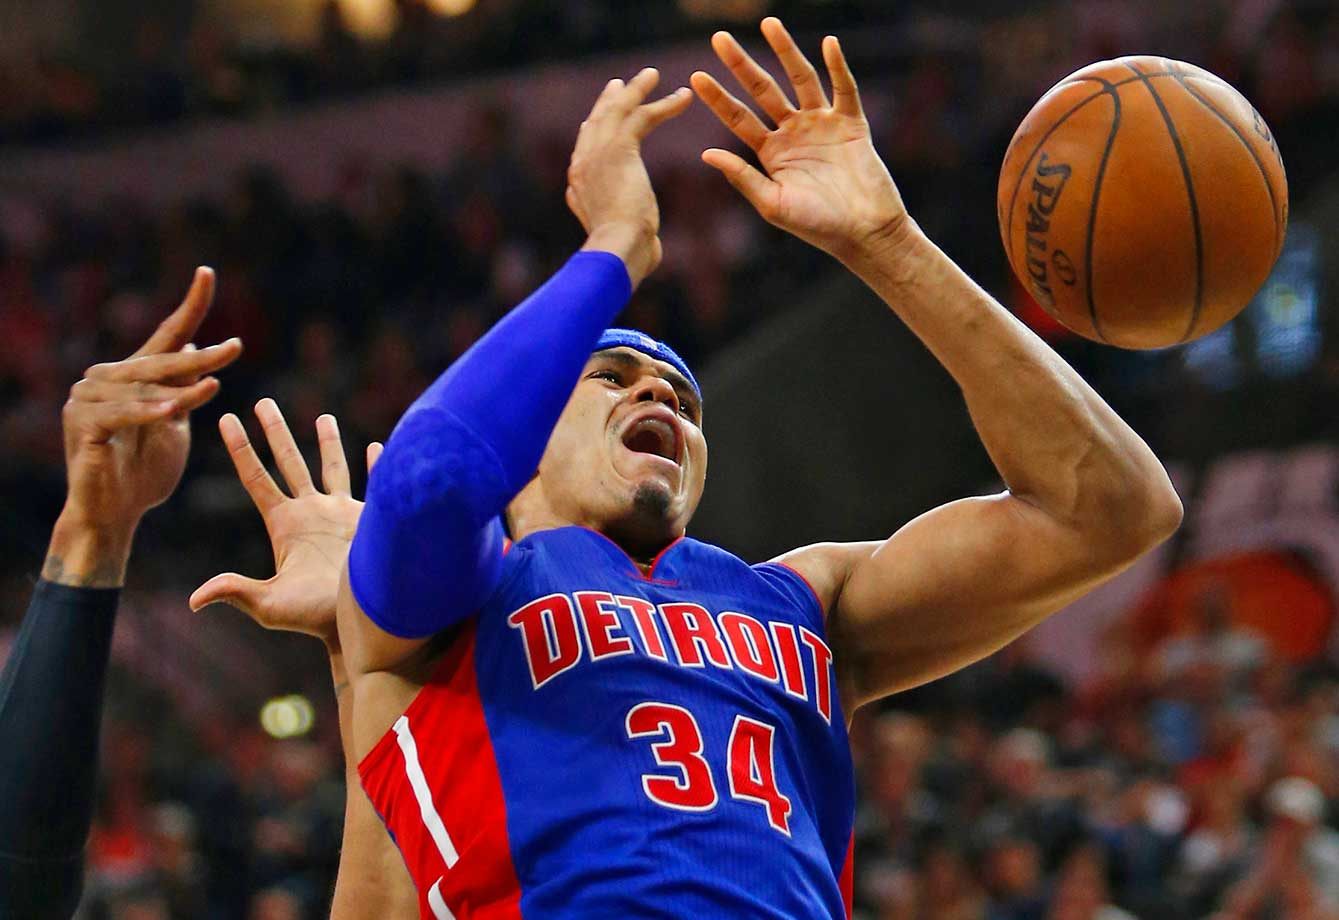 Tobias Harris of the Detroit Pistons has the ball knocked out of his hands by a San Antonio player.